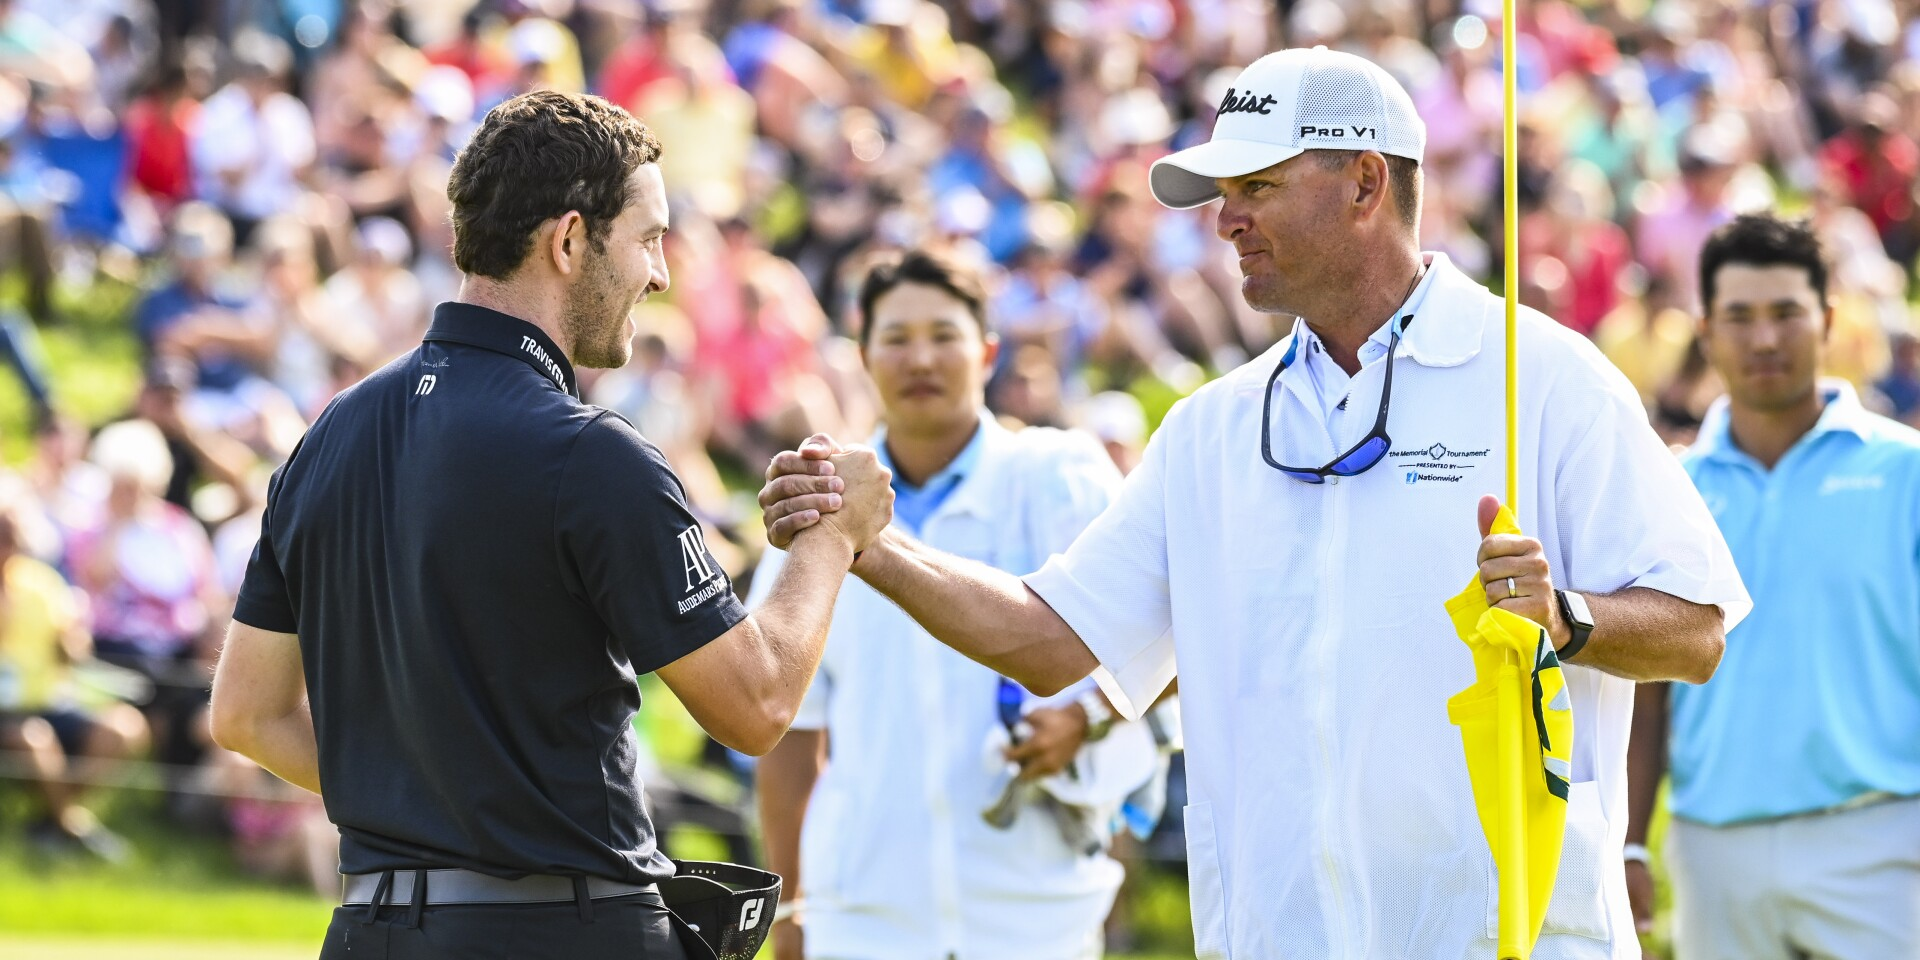 the Memorial Tournament presented by Nationwide - Cantlay celebrating with his caddie